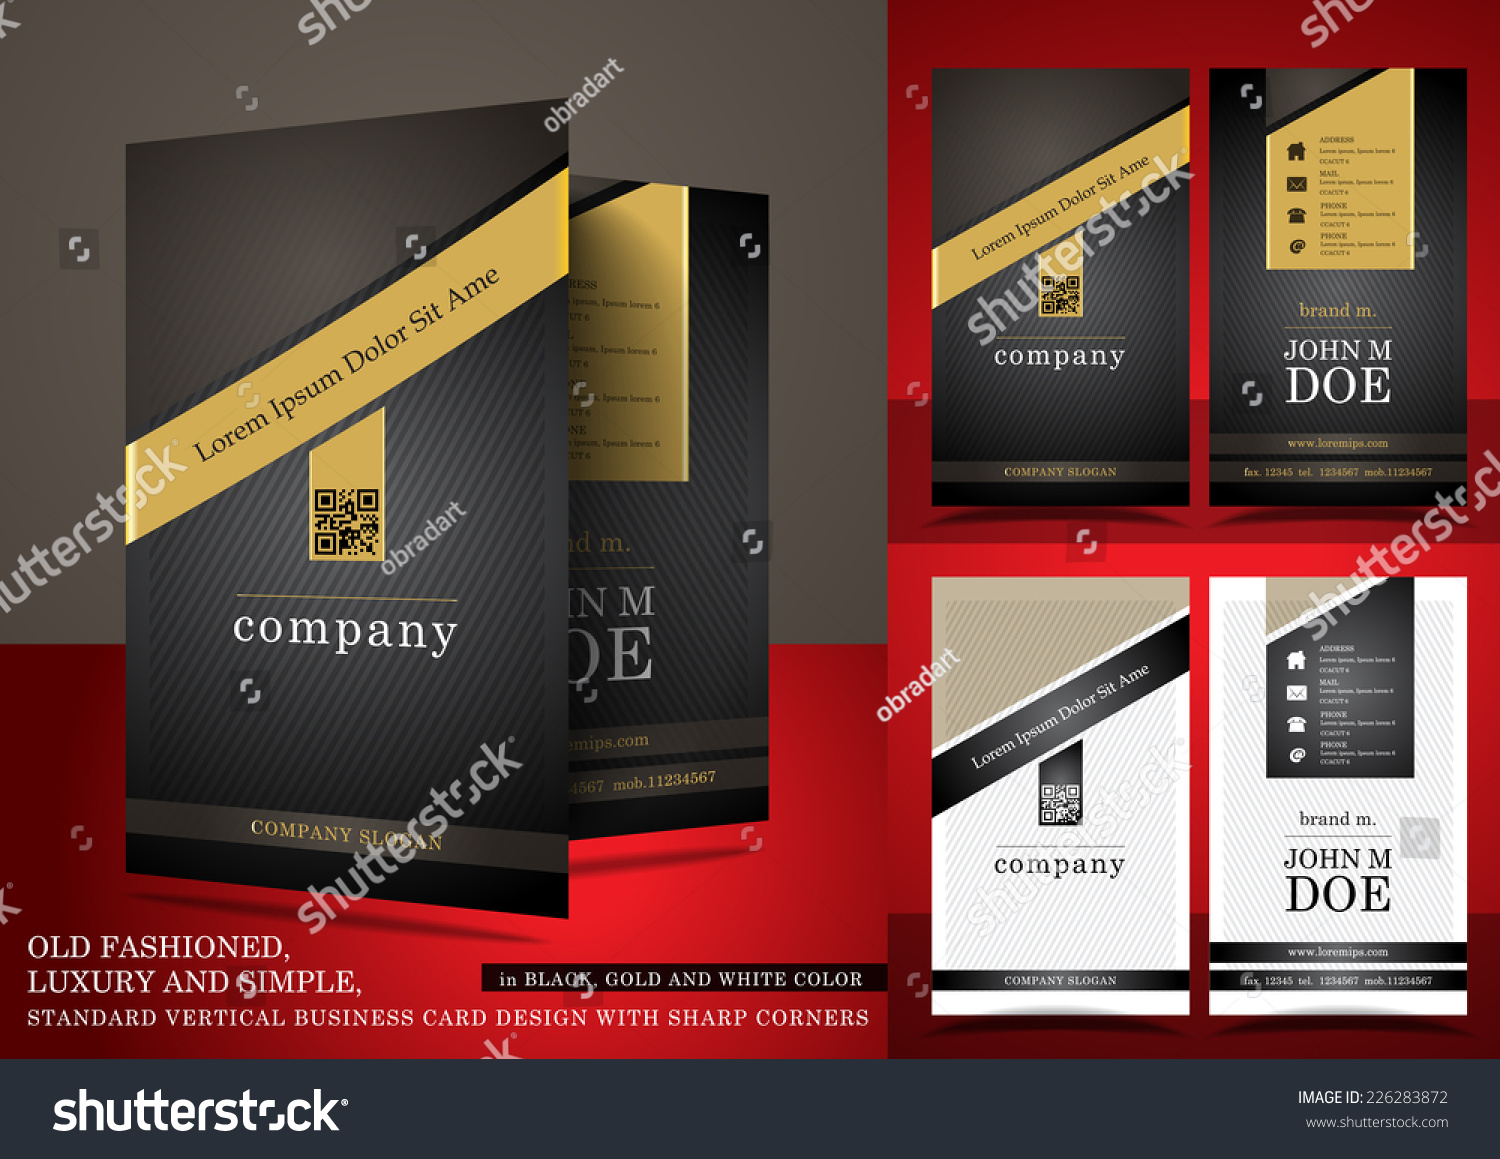 Old Fashioned Business Card Black Gold Stock Photo (Photo, Vector ...